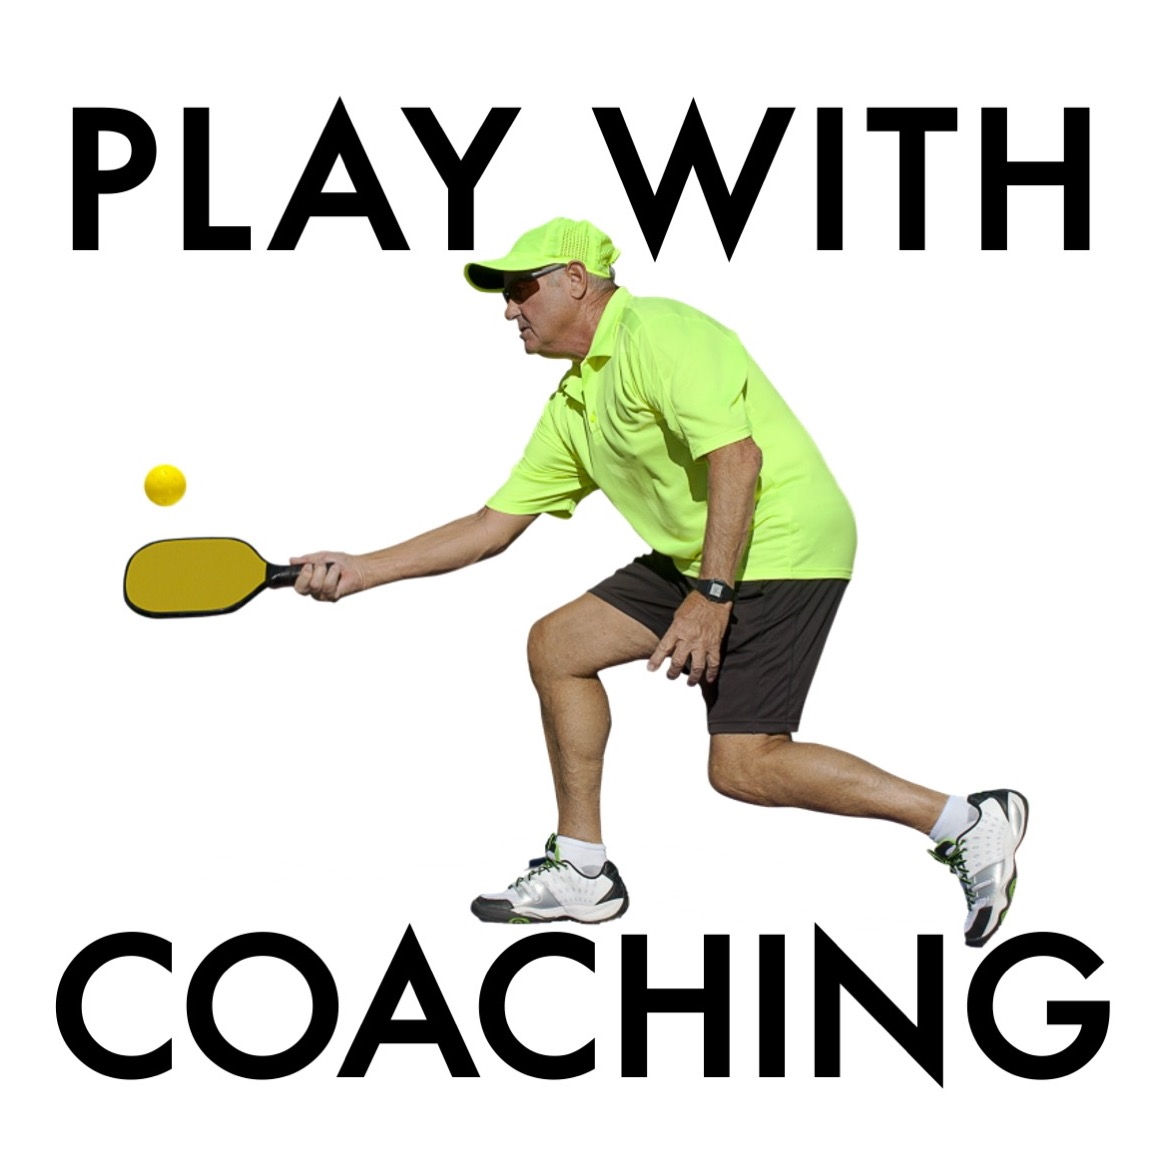 Play with Coaching